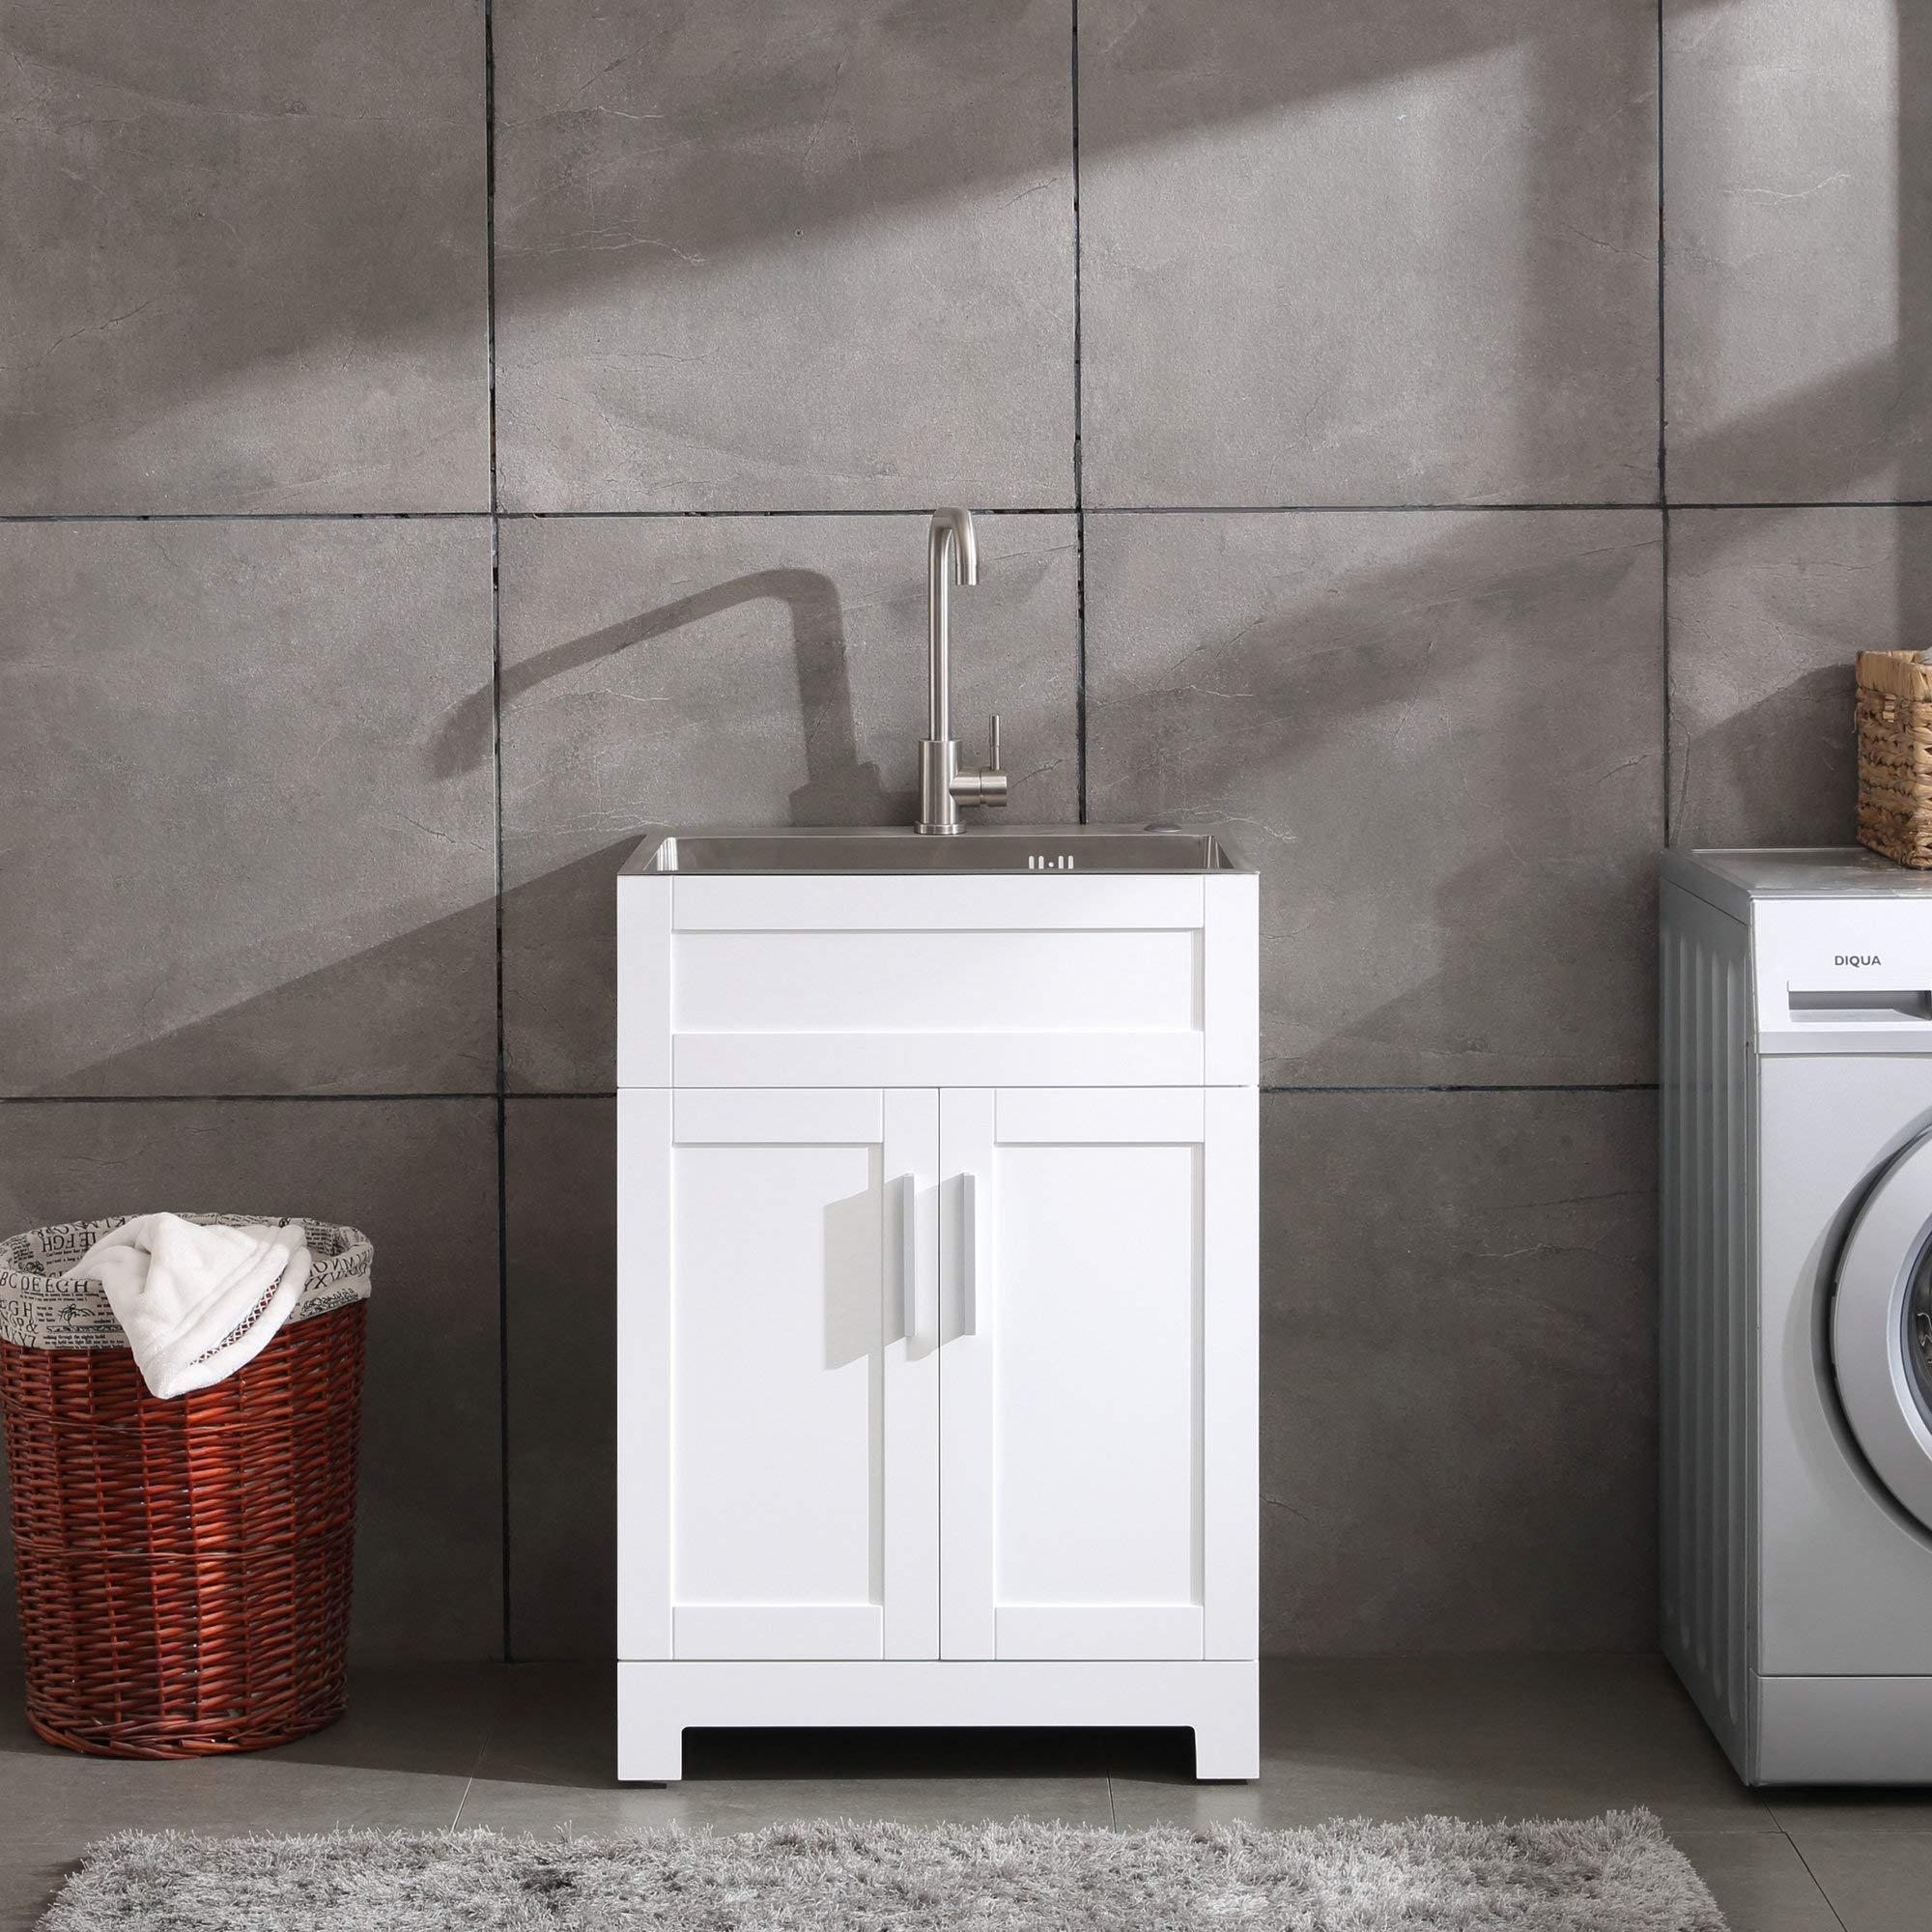 24'' White Laundry Utility Cabinet w/Stainless Steel Sink and Faucet Combo